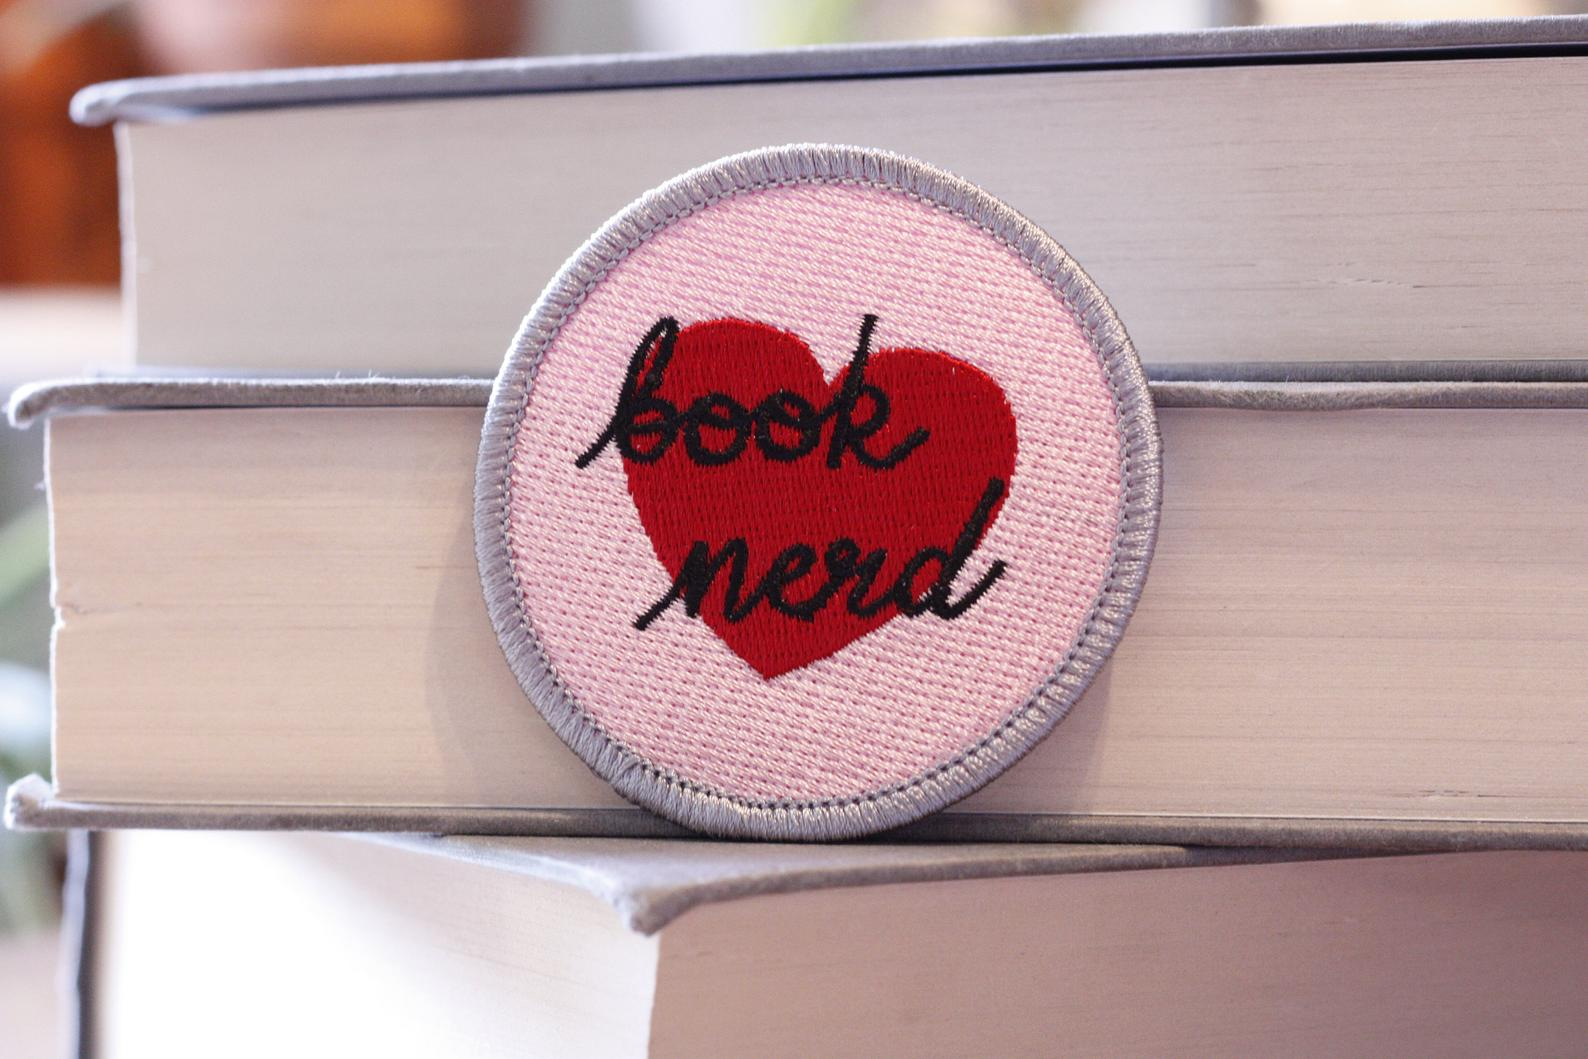 Book Nerd - Patch